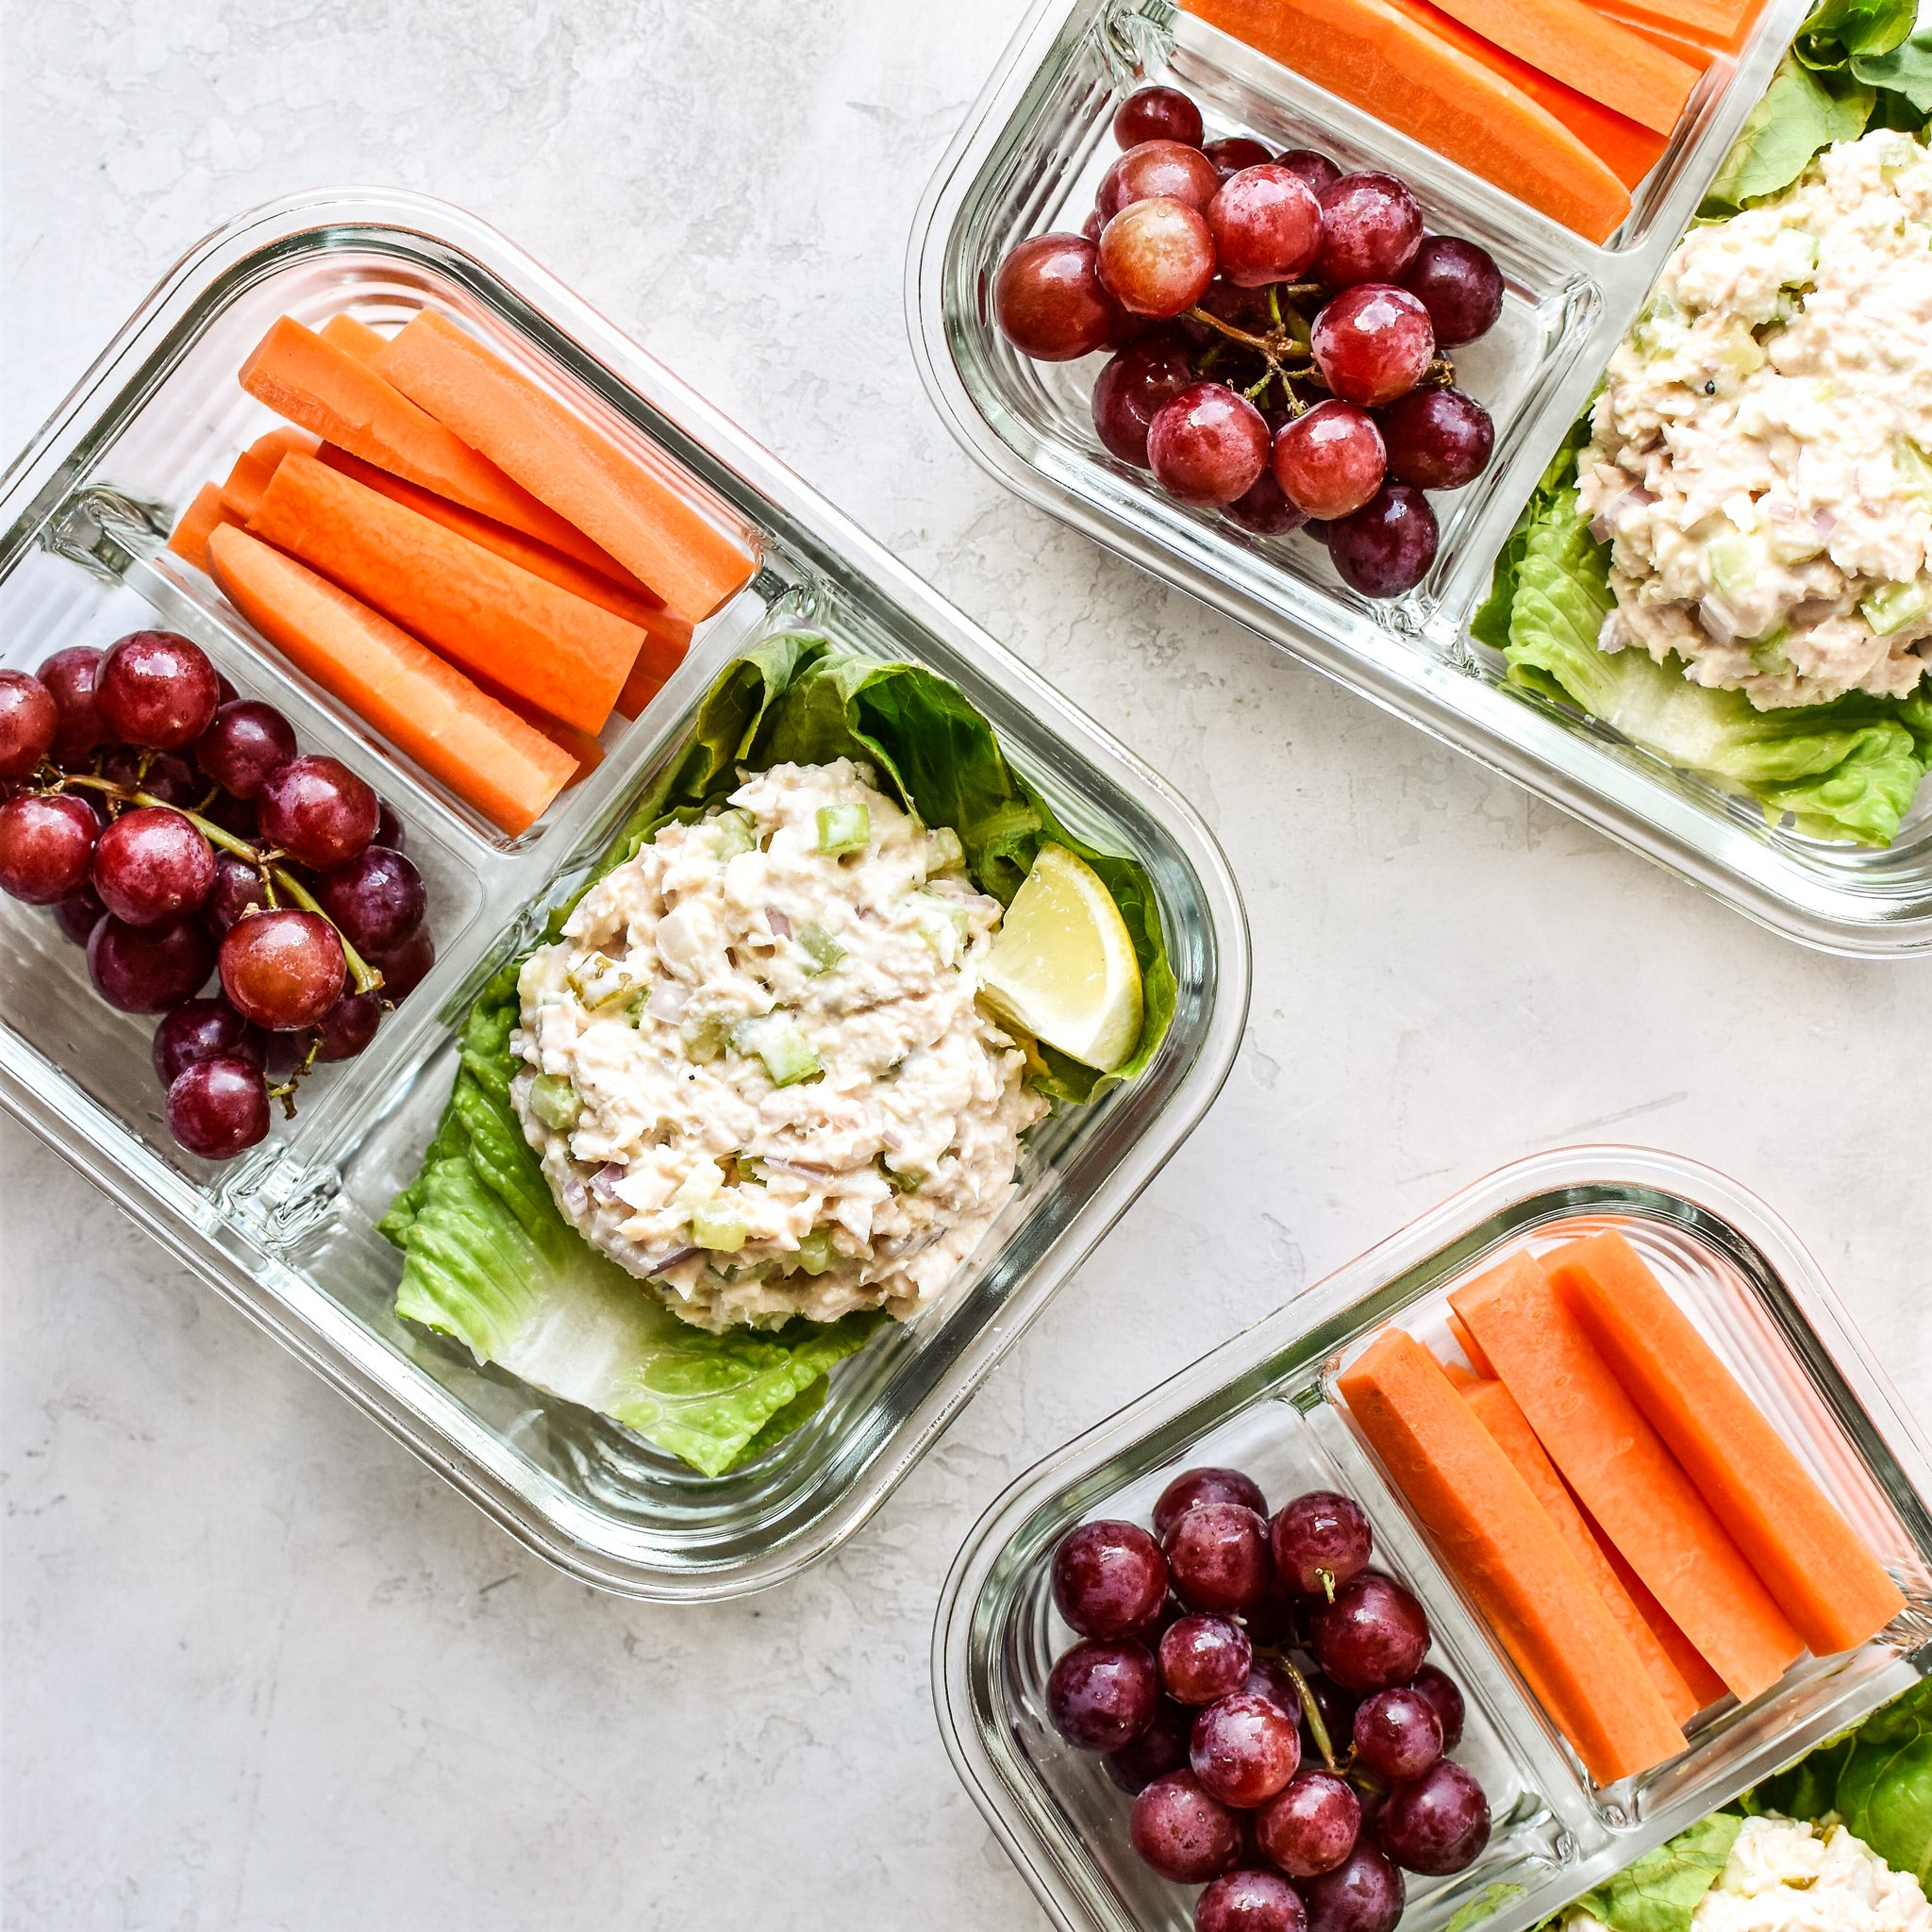 Tuna salad meal prep with grapes and carrots in meal prep containers.